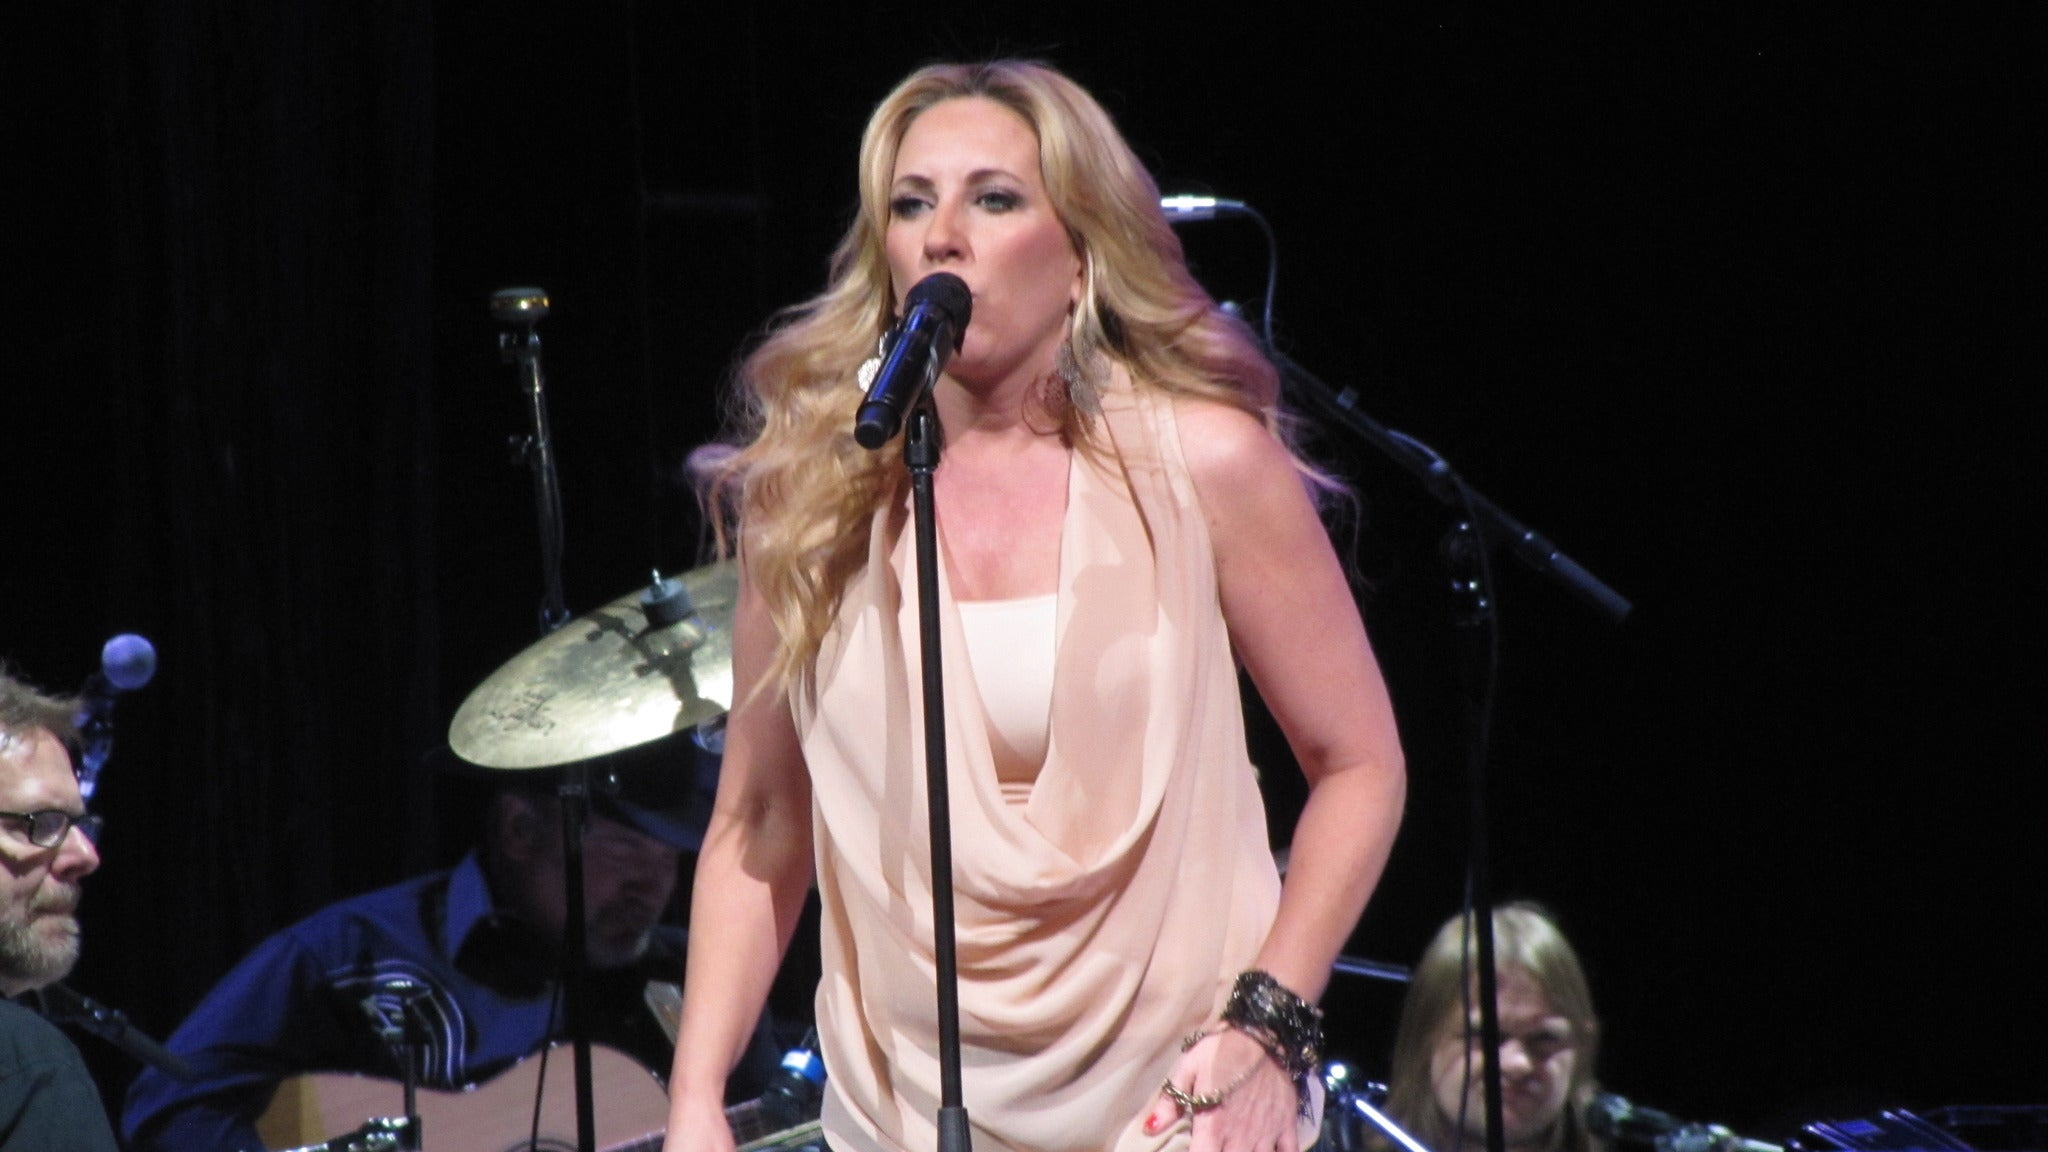 Lee Ann Womack at The Canyon - Agoura Hills, CA 91301